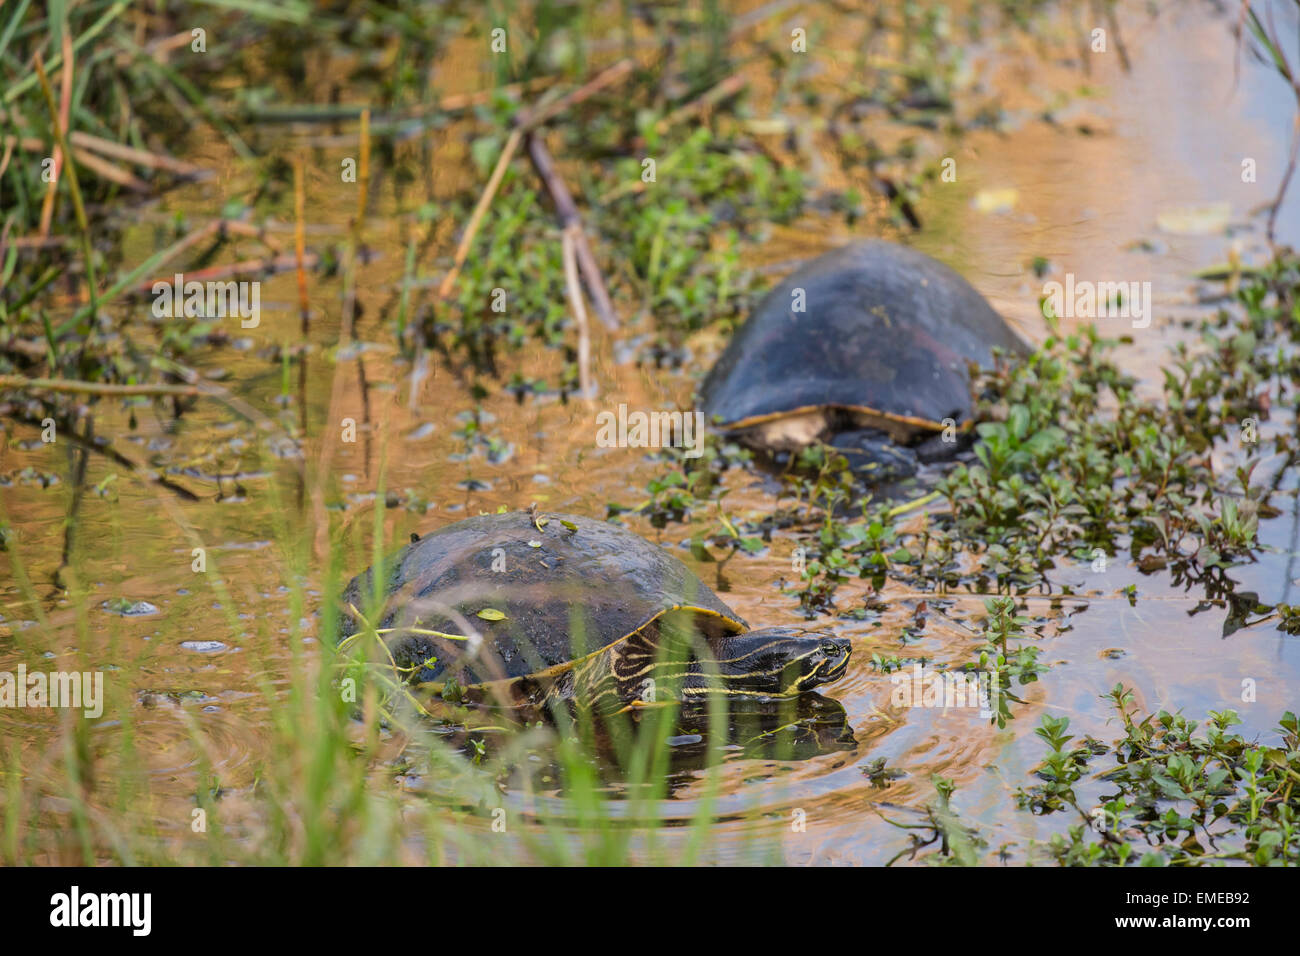 Florida red-bellied cooter or redbelly turtle (Pseudemys nelsoni) along the Anhinga Trail, Florida Everglades National Stock Photo